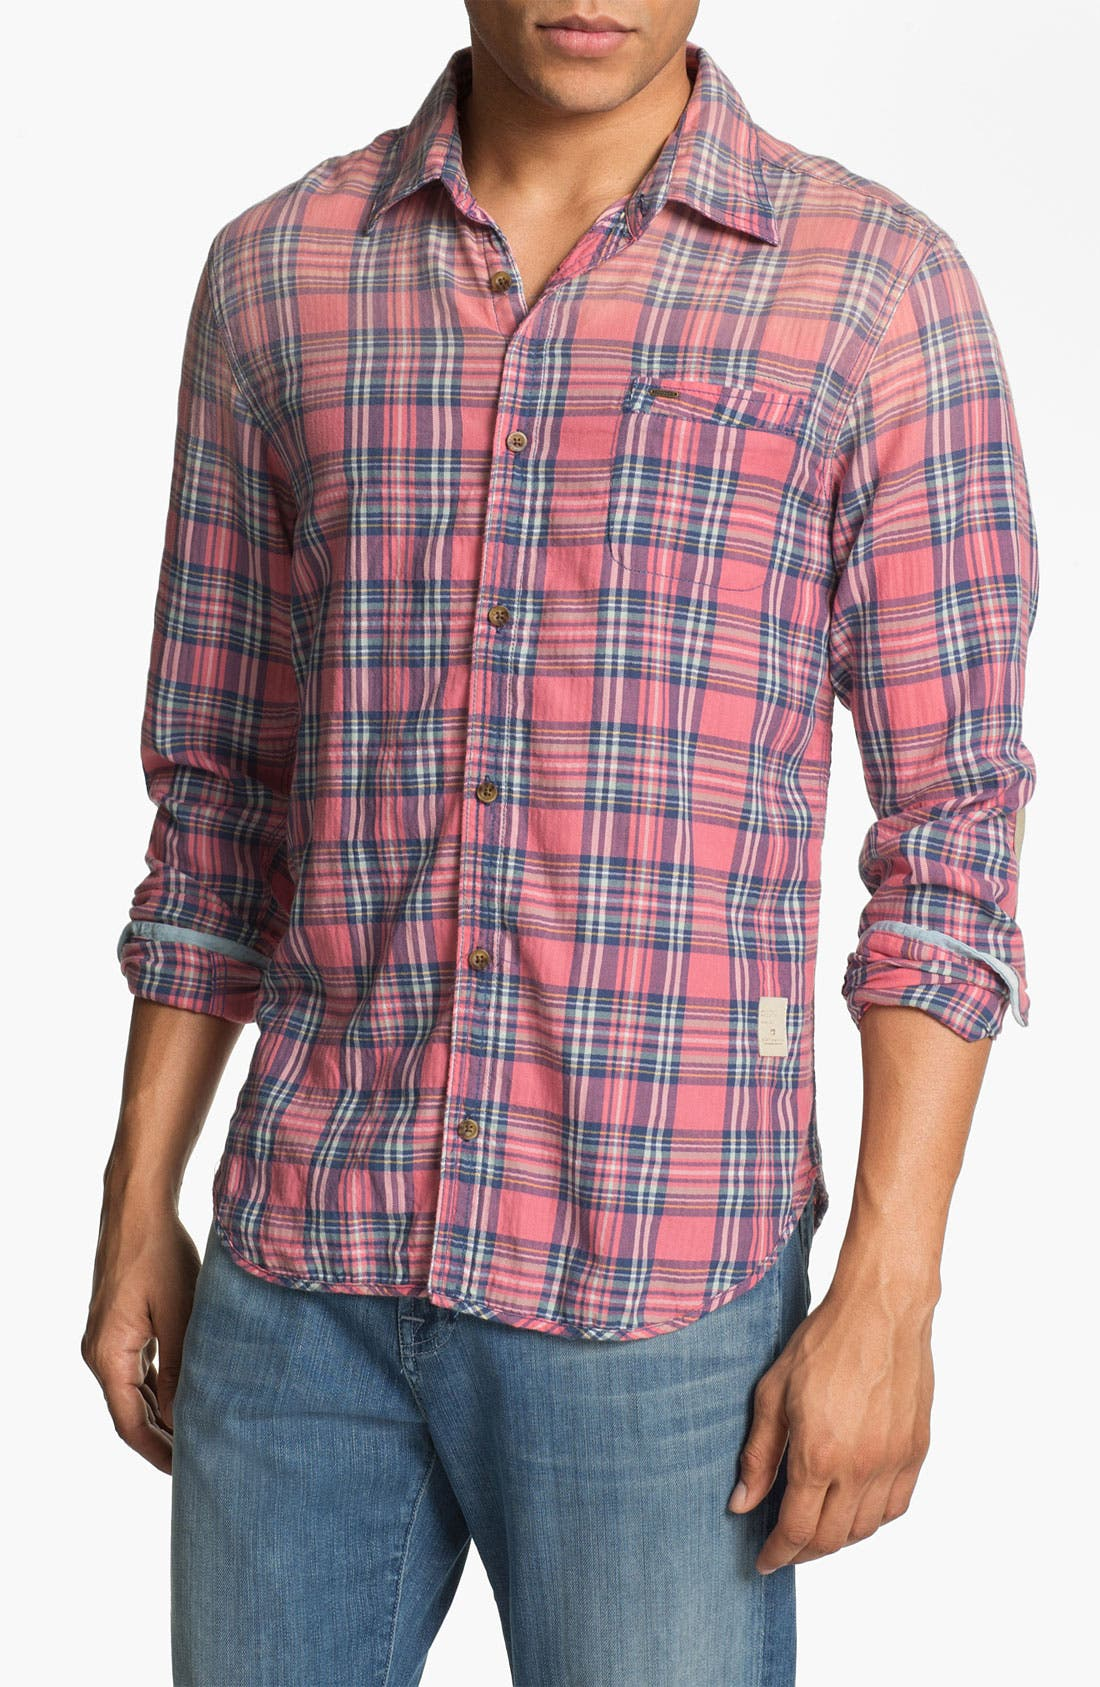 Alternate Image 1 Selected - Scotch & Soda Herringbone Plaid Shirt